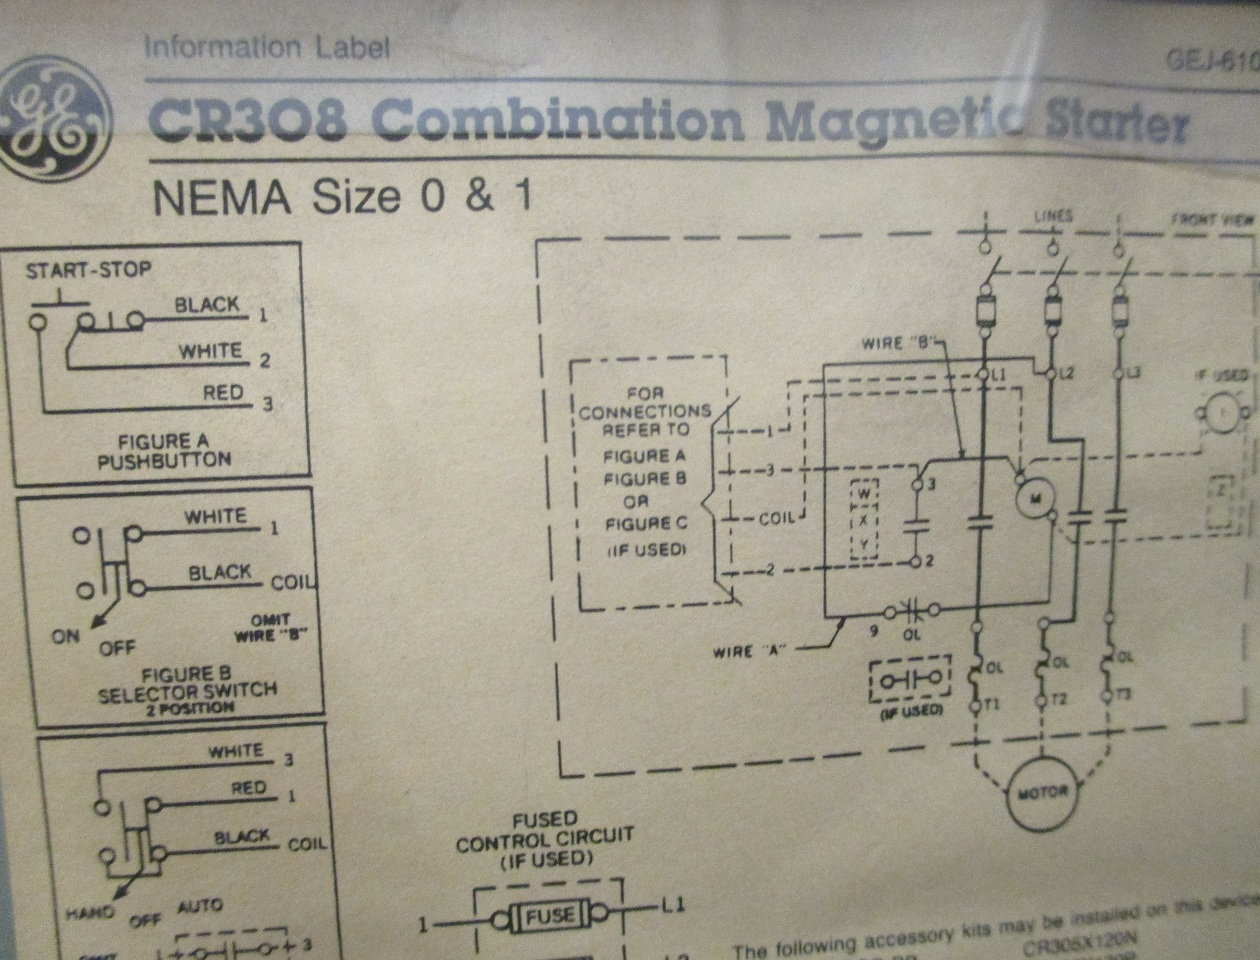 dis3585 ge combination magnetic starter cr308 600v max complete enclosure 300 line control 3?resize\=665%2C507 ge cr 308 motor starter wiring diagram wiring diagrams  at mr168.co